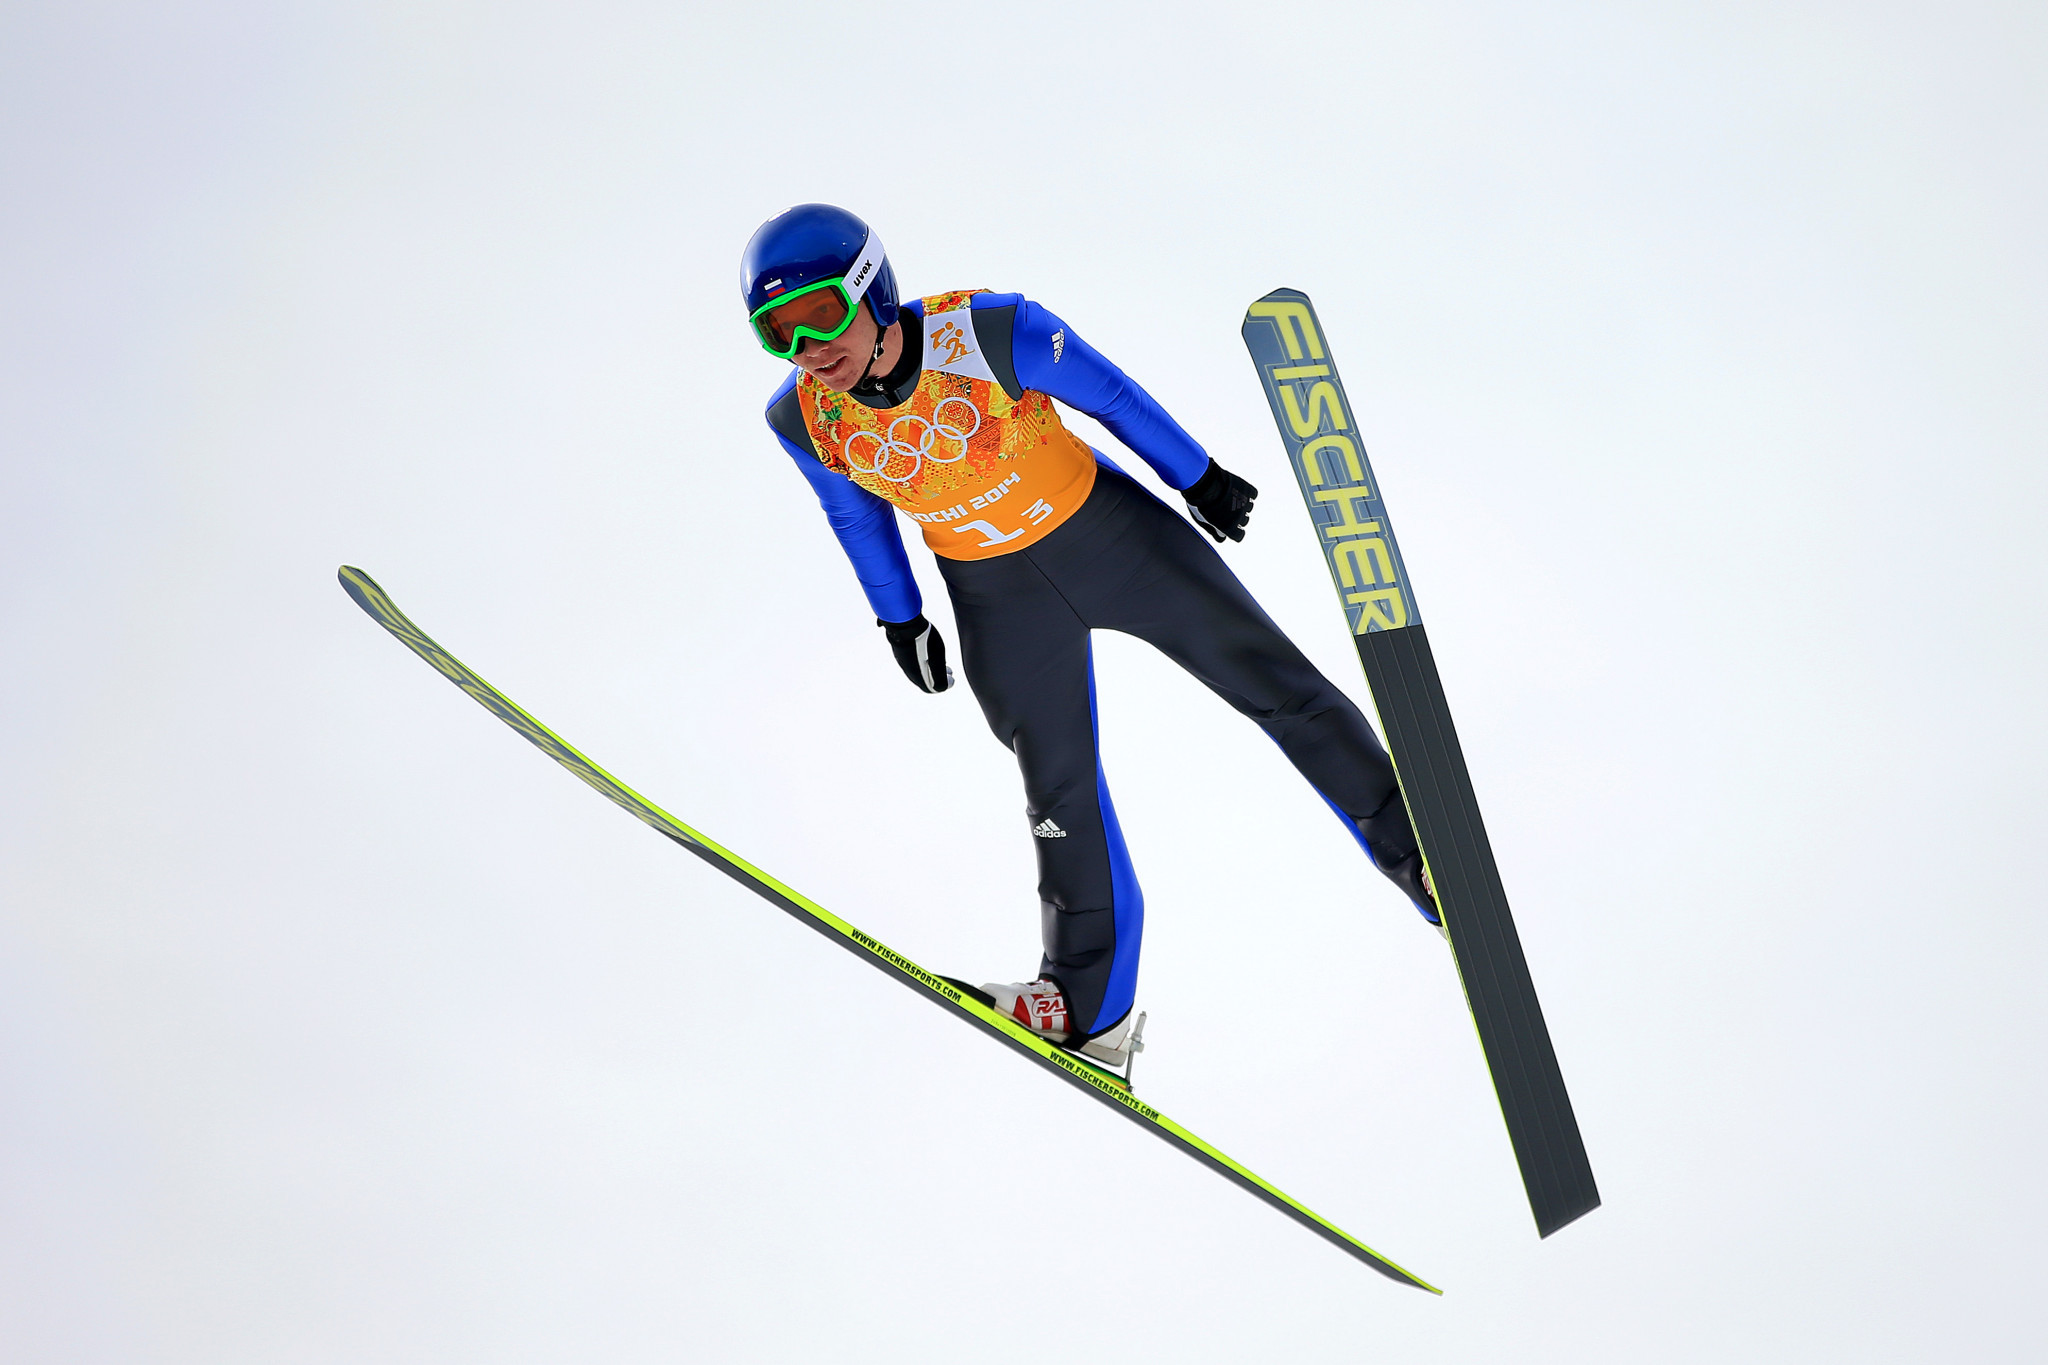 Russian Nordic Combined athlete retires after struggling to recover from injury